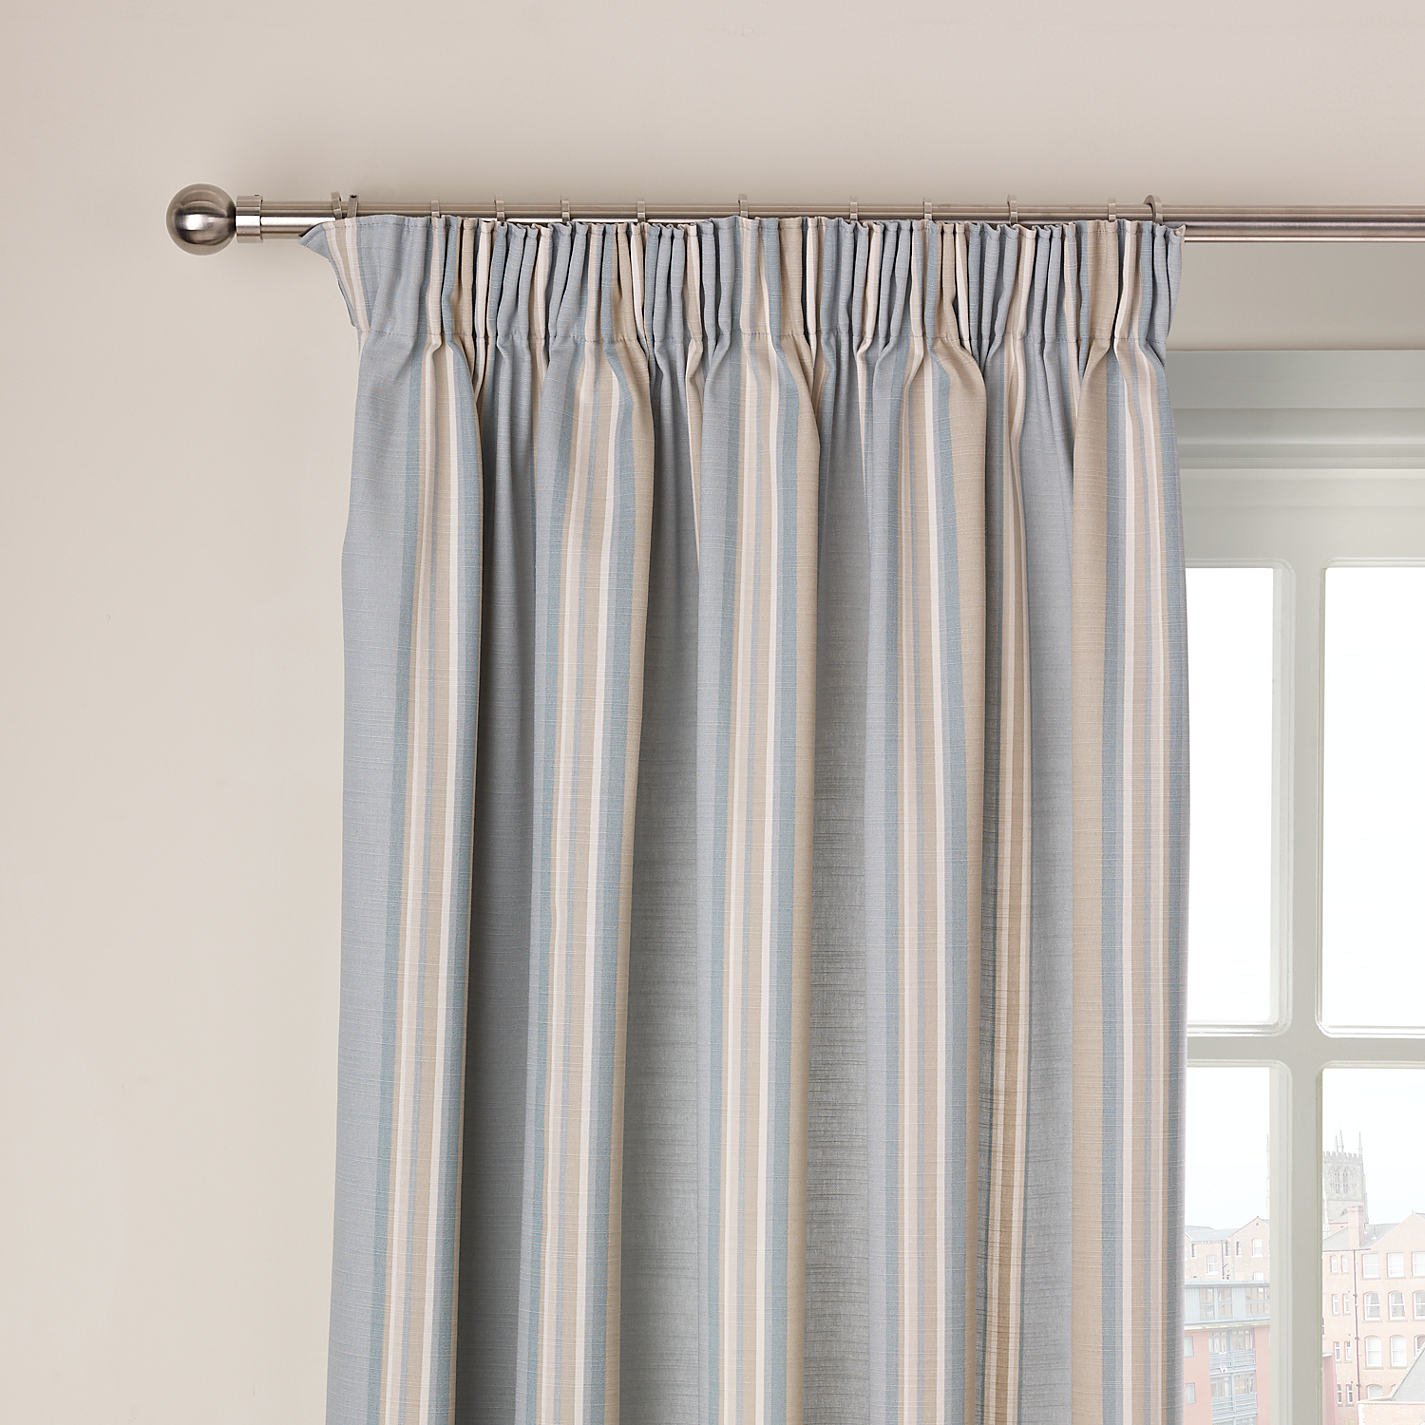 Duck Egg Blue Stripe Pencil Pleat Curtains | www.redglobalmx.org for Pencil Pleat Curtains On Track  103wja